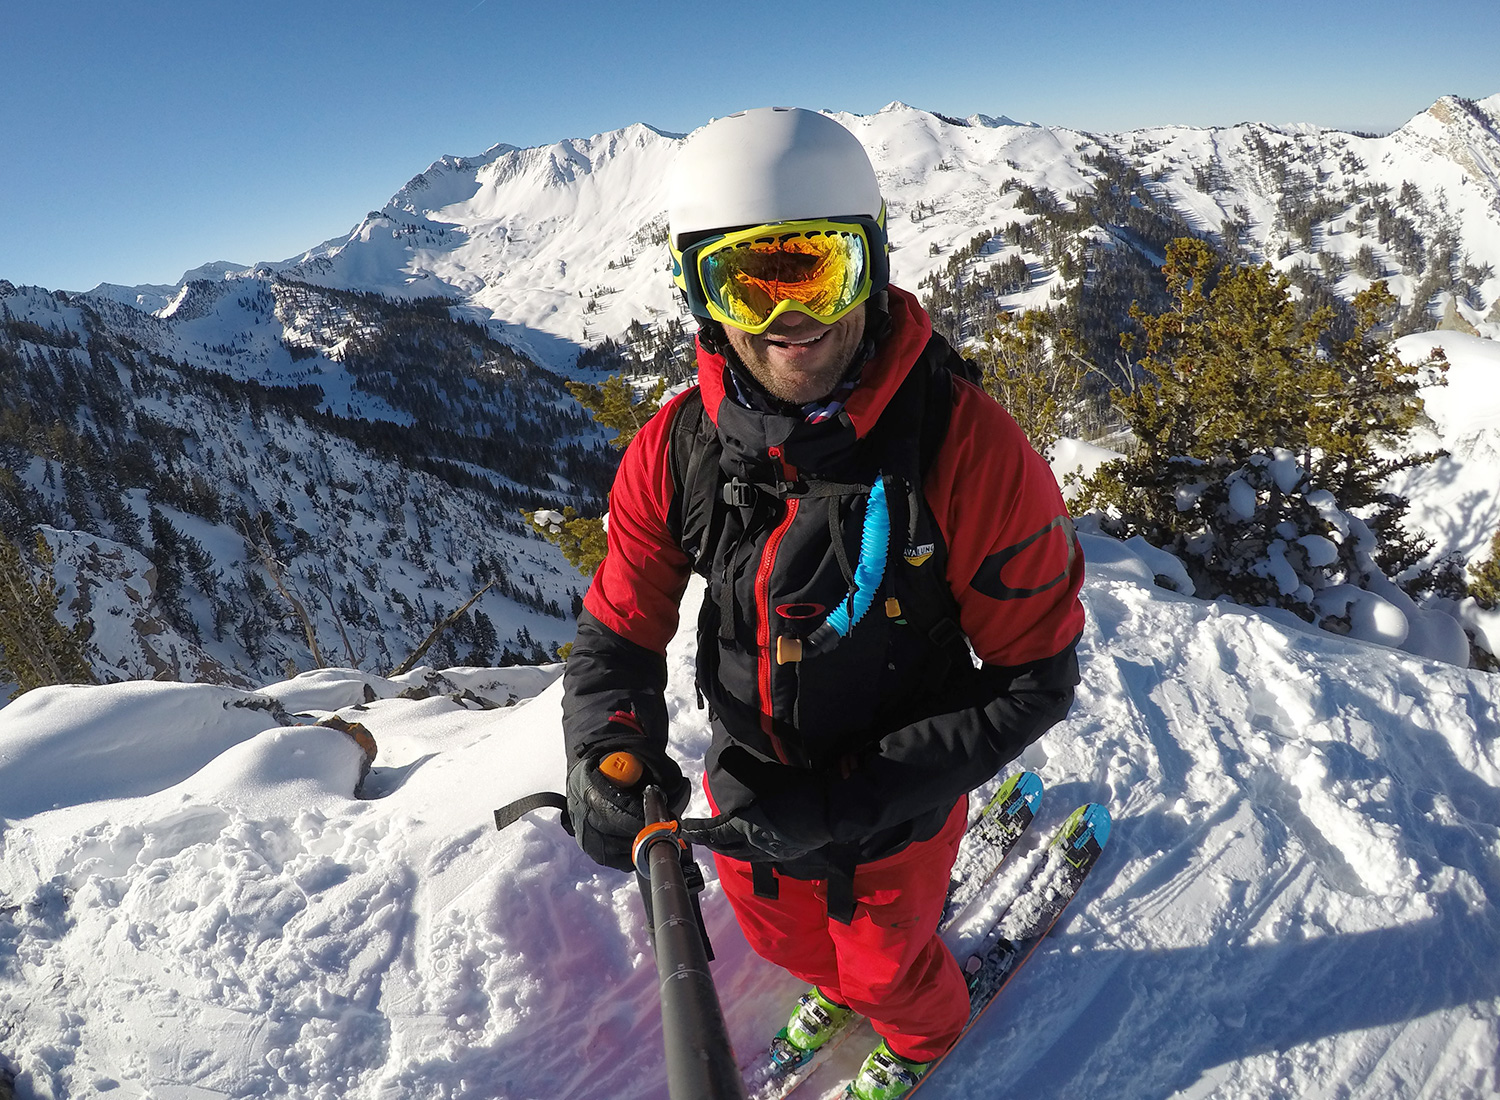 burke-alder-backcountry-skier-utah.jpg